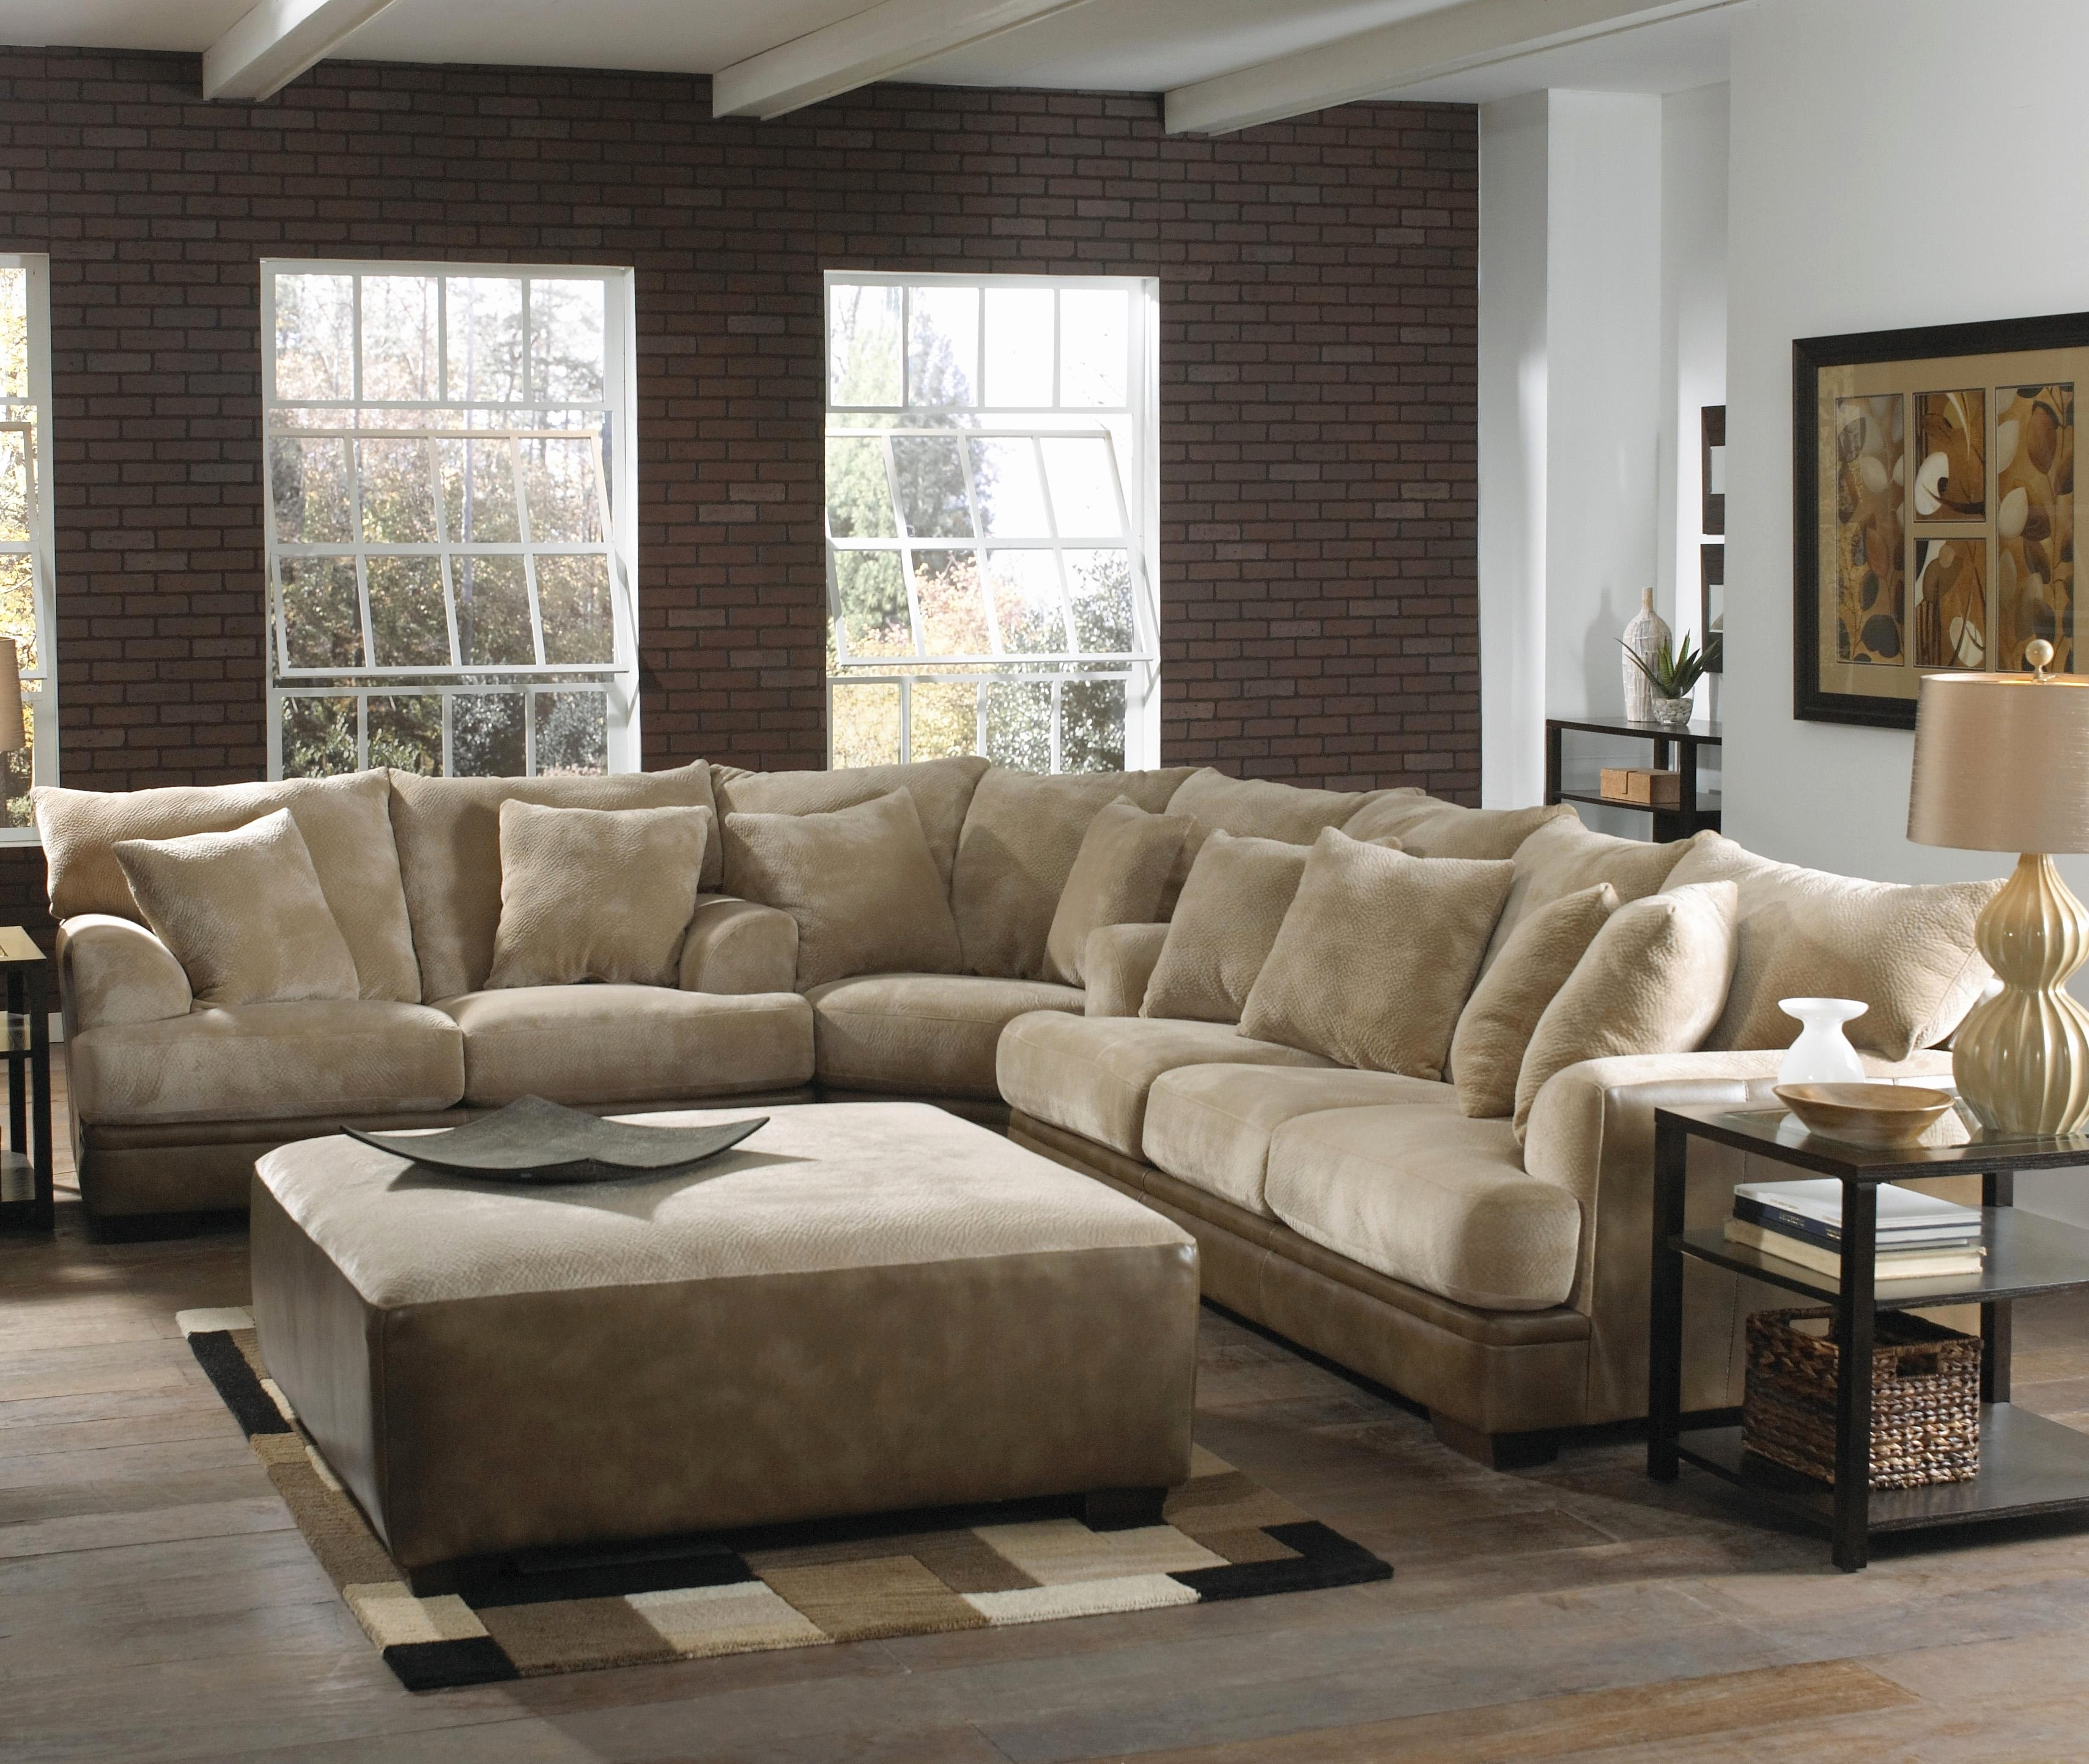 Best And Newest Wide Sectional Sofas In Fresh Sectional Sofa With Extra Wide Chaise 2018 – Couches Ideas (View 11 of 20)